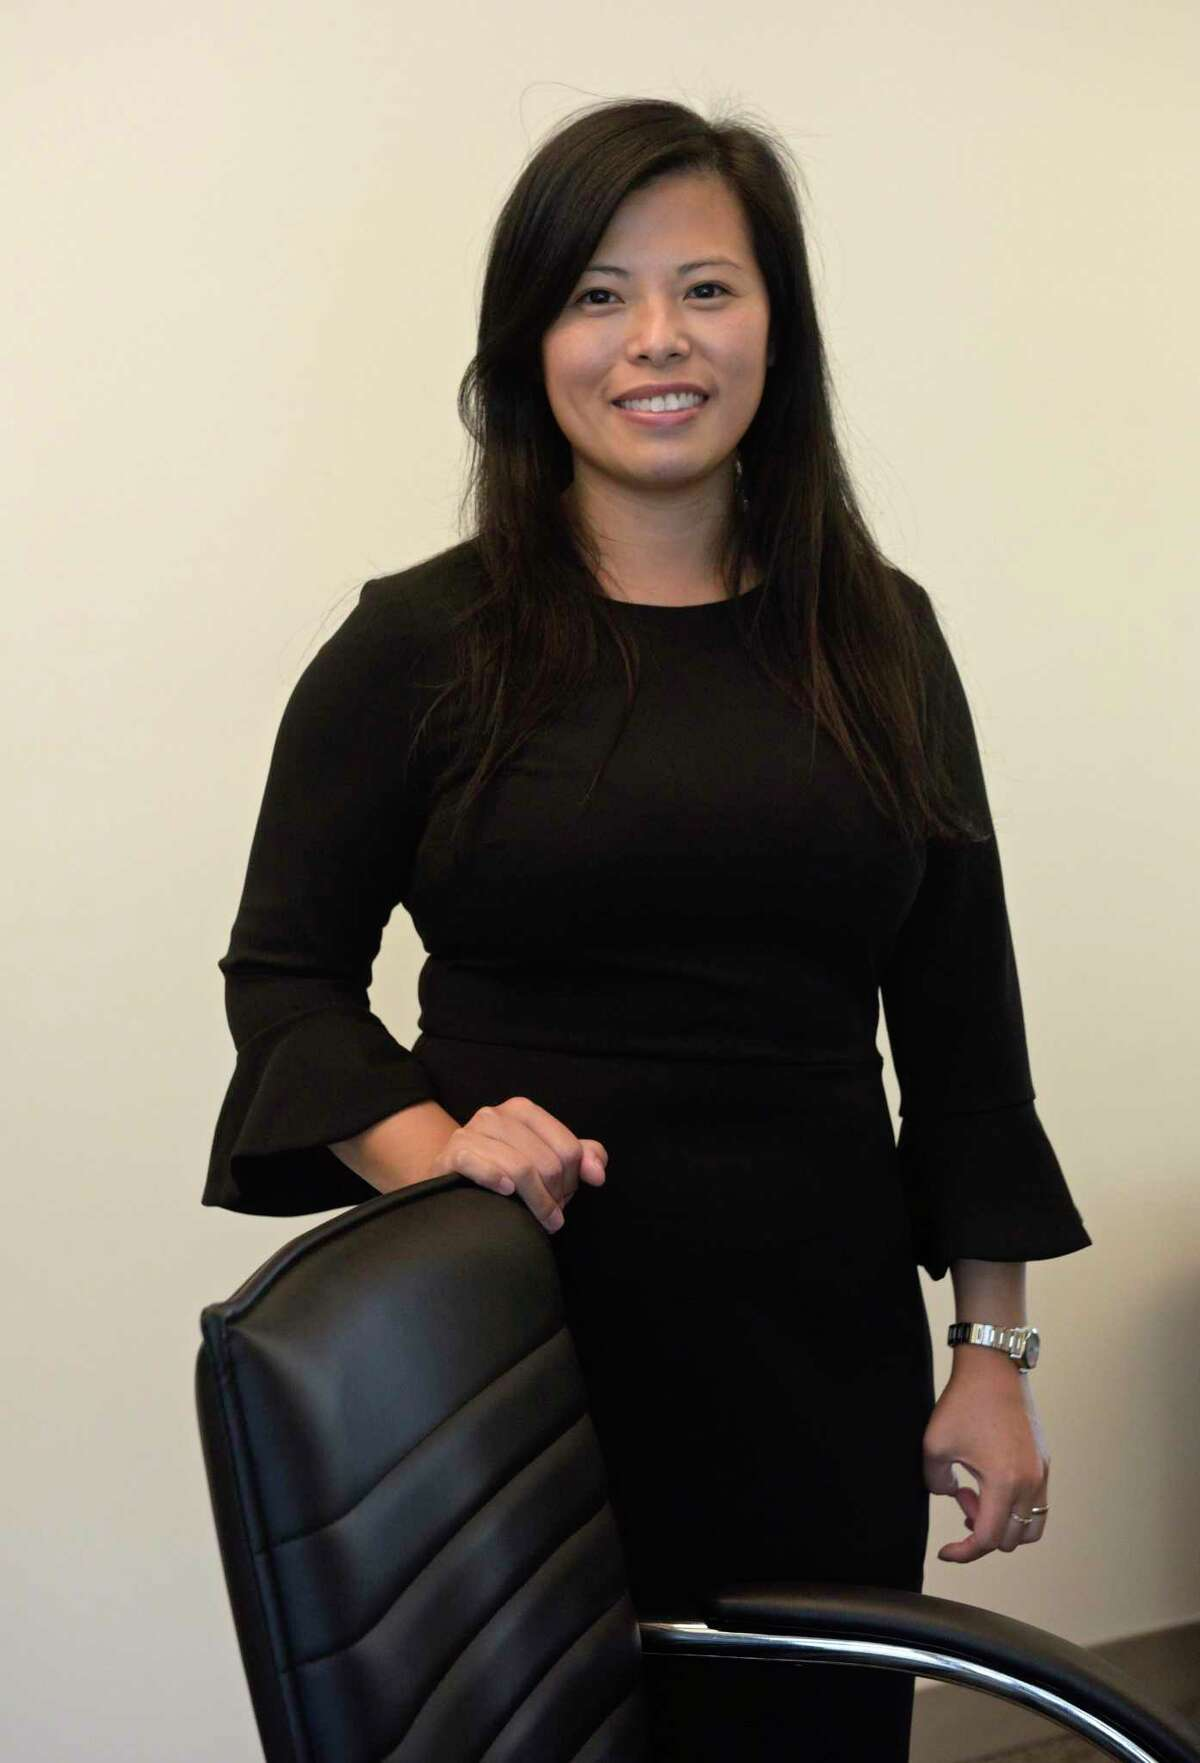 Autism Behavioral Health founder and clinical director Jessie Wong. Monday September 14, 2020, in Danbury, Conn.